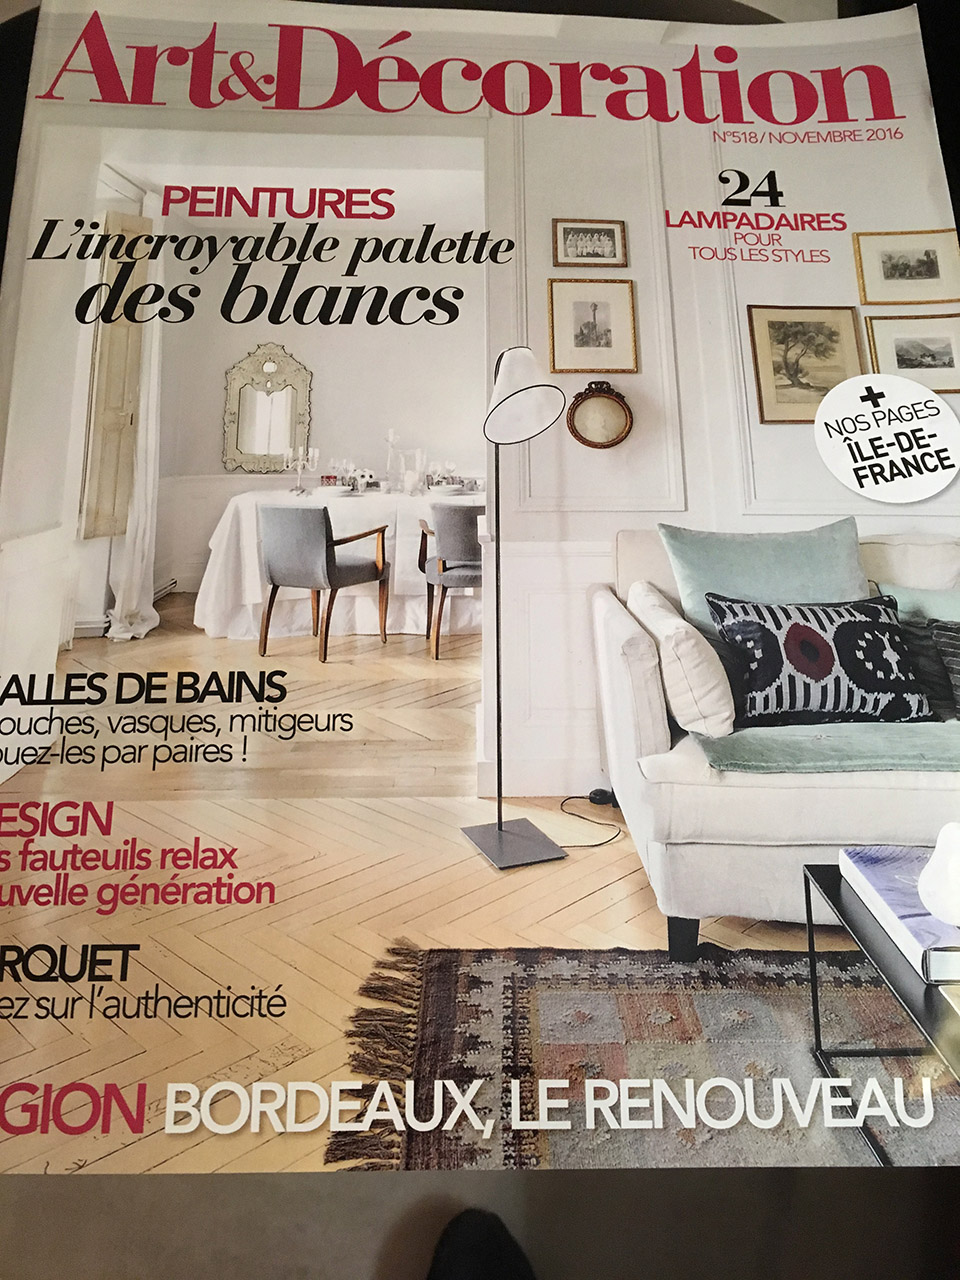 PRESS ART ET DECORATION001